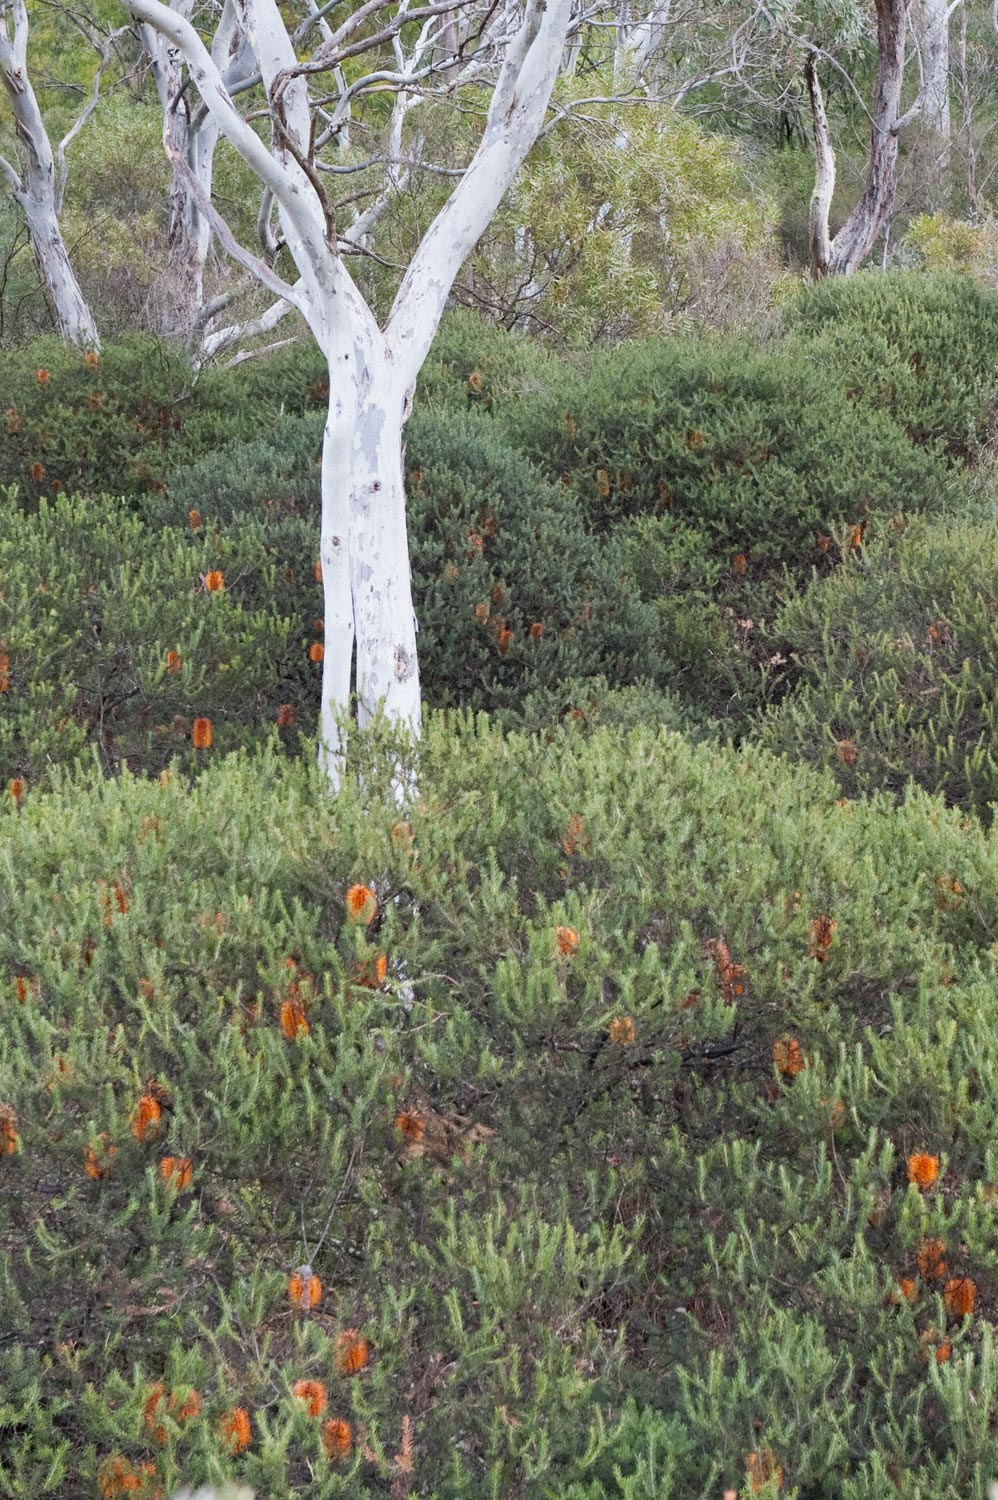 Warren-Hinder-Orange-Banksia-Gums-on-Walk.jpg